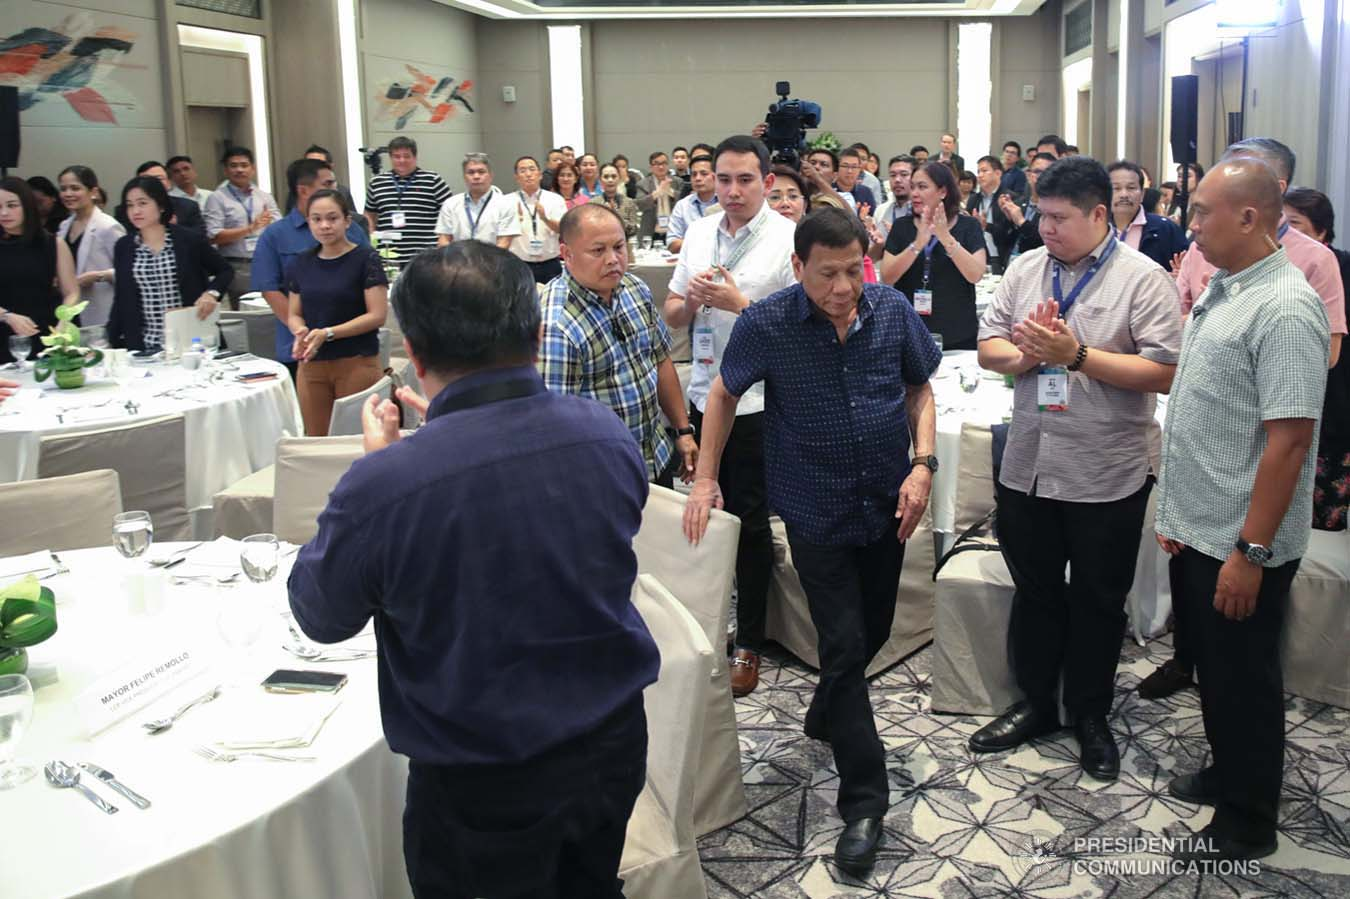 President Rodrigo Roa Duterte heads over to the stage to deliver his speech during the 69th National Executive Board Meeting of the League of Cities of the Philippines at the DusitD2 Davao Hotel in Davao City on September 27, 2019. ROBINSON NIÑAL JR./PRESIDENTIAL PHOTO